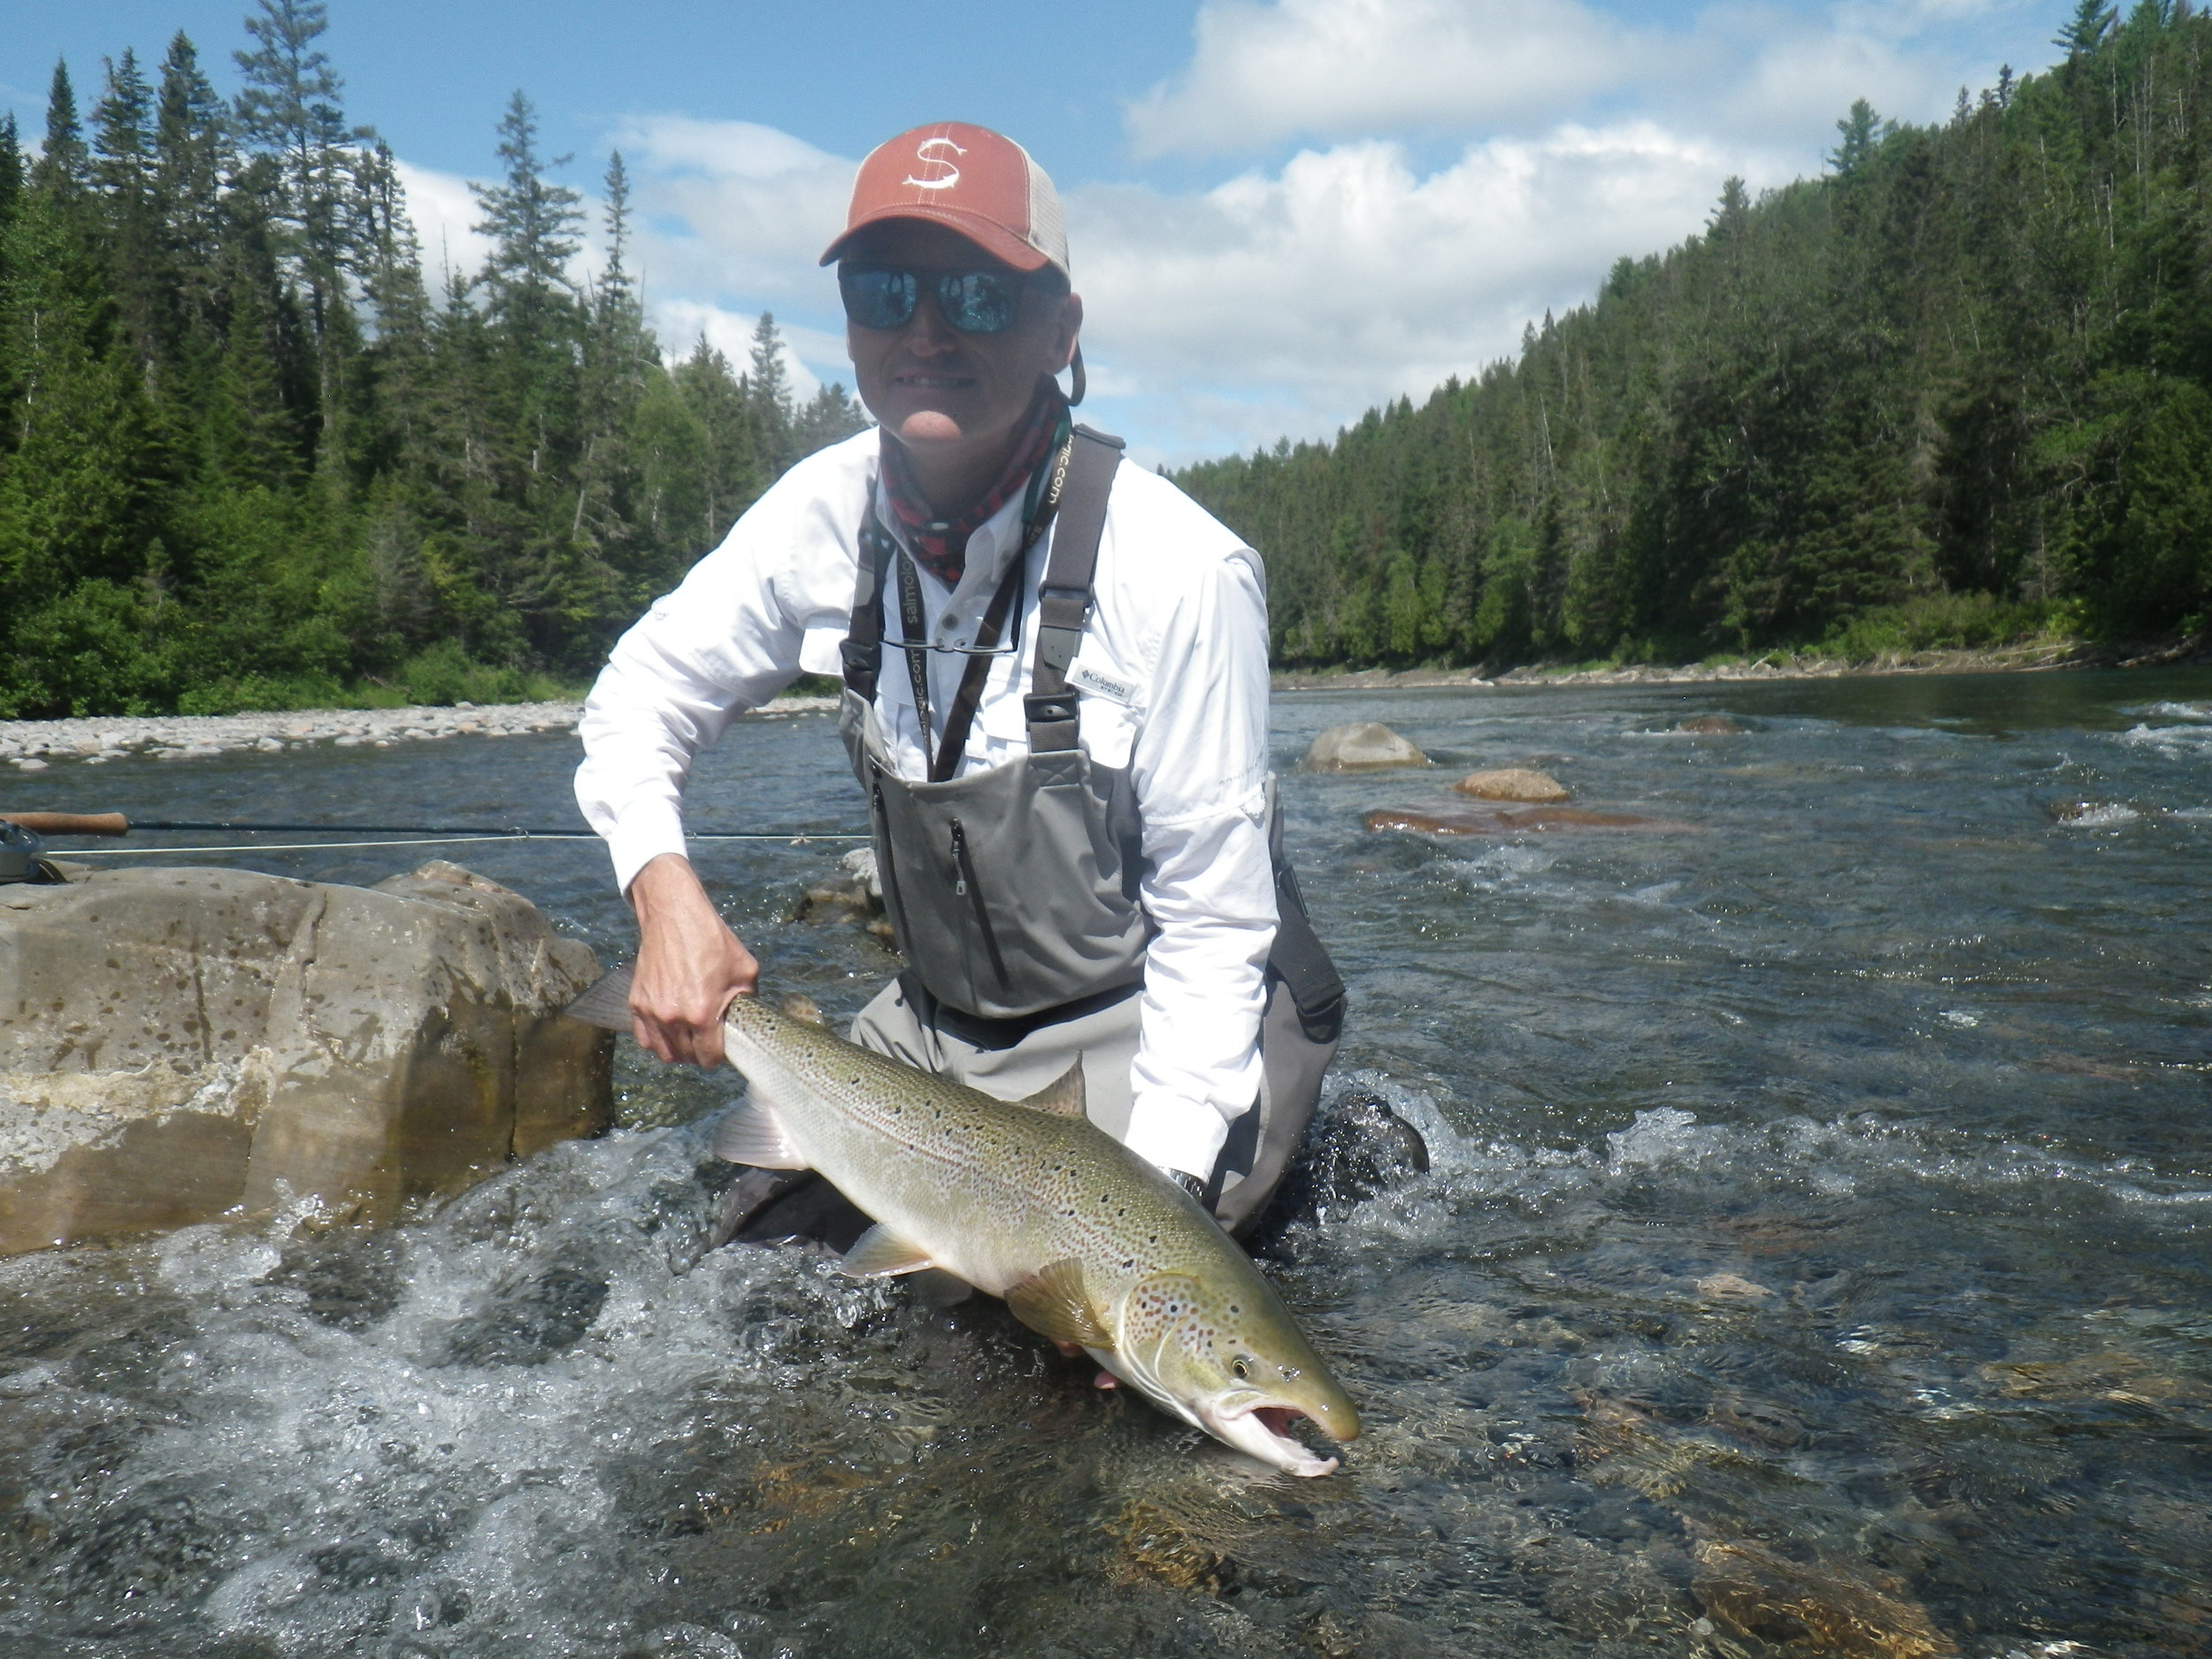 Jeremy Beamall with his first one landed on the Bonaventure this week! Congrats Jeremy!